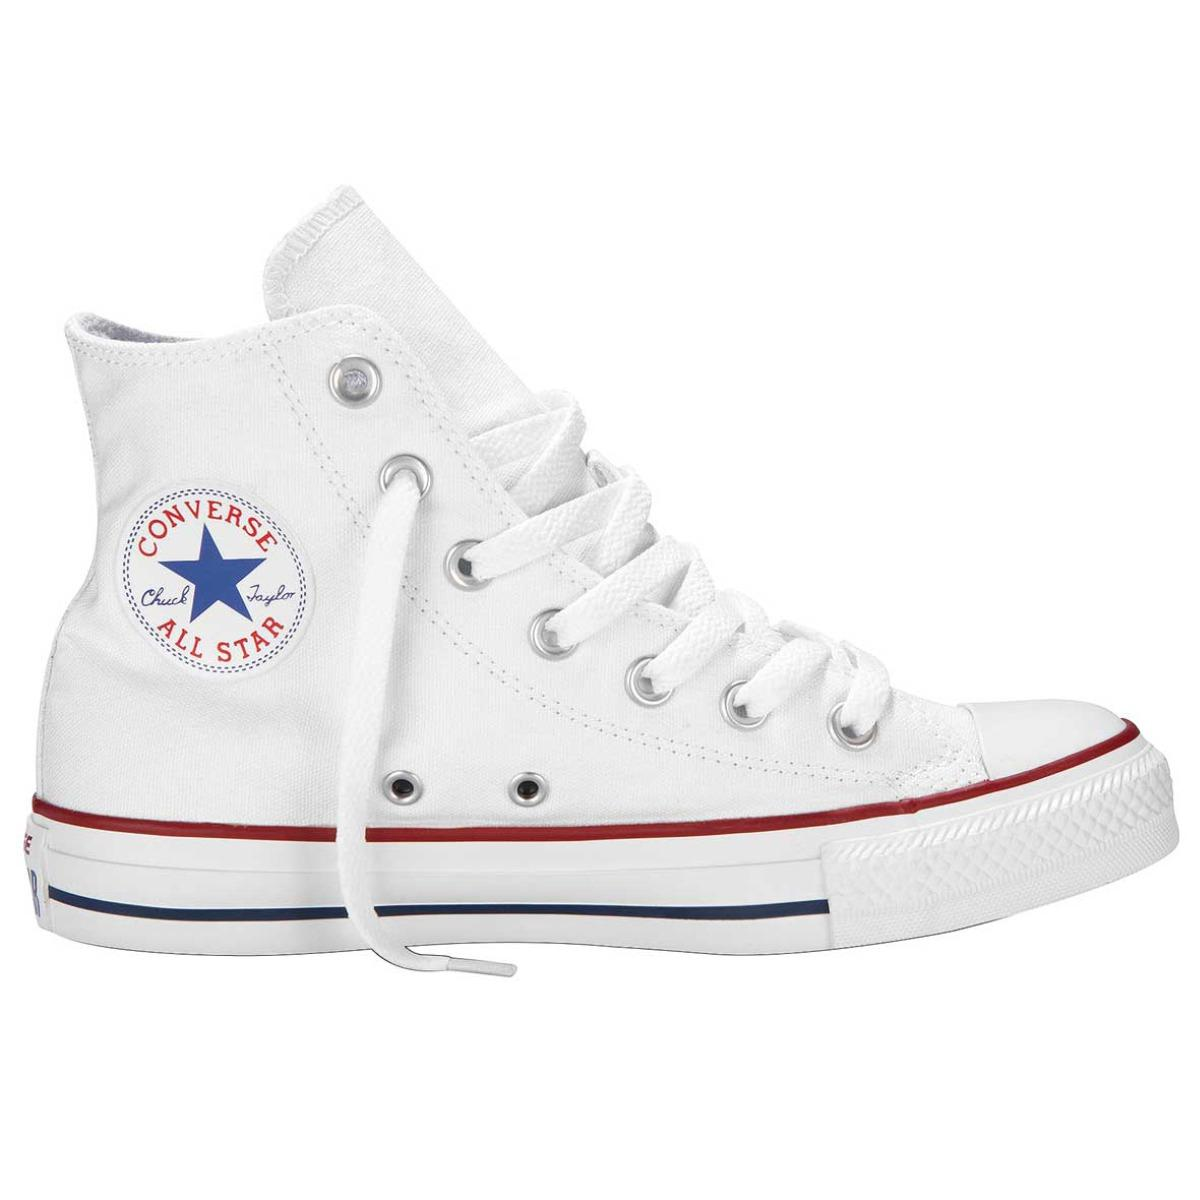 sepatu sneakers converse all star clasic HI unisex-putih